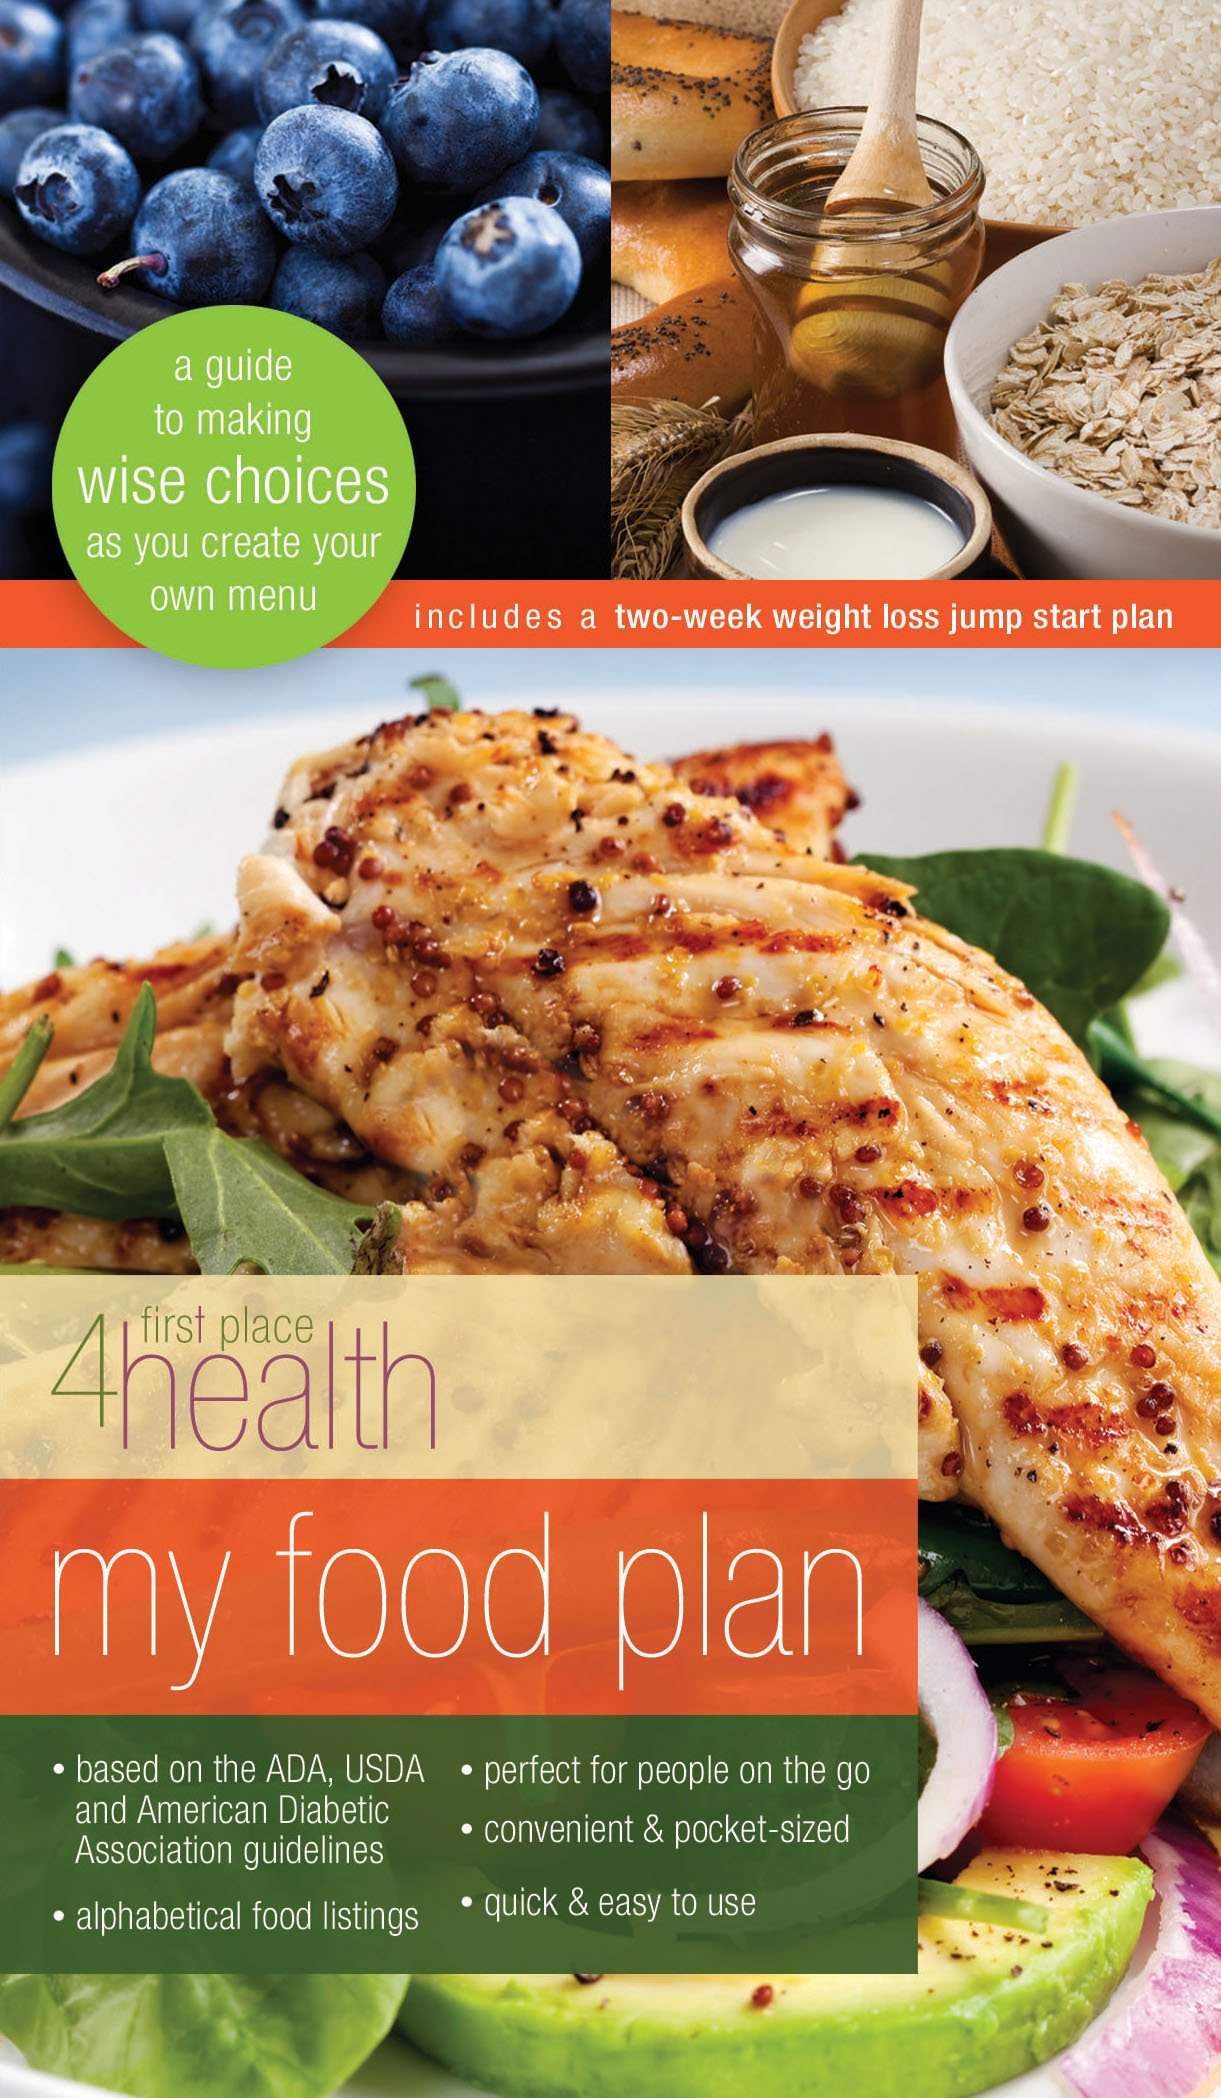 My food plan by first place 4 health 2011 08 02 first place 4 my food plan by first place 4 health 2011 08 02 first place 4 health 9781942425106 amazon books forumfinder Choice Image